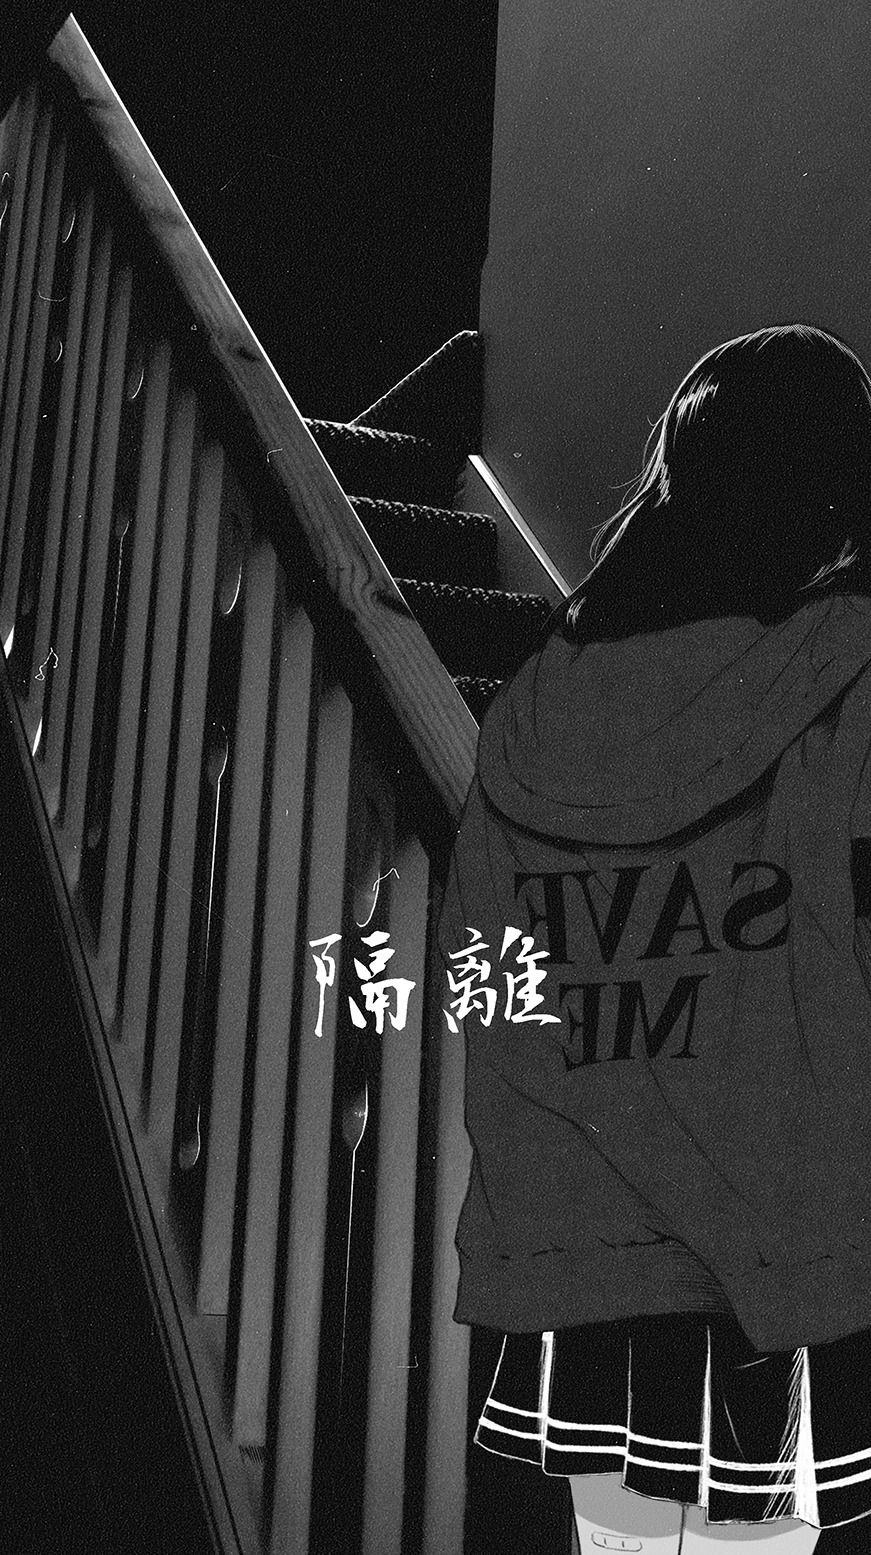 Nishio Anime Wallpaper Iphone Black Aesthetic Wallpaper Dark Wallpaper Iphone